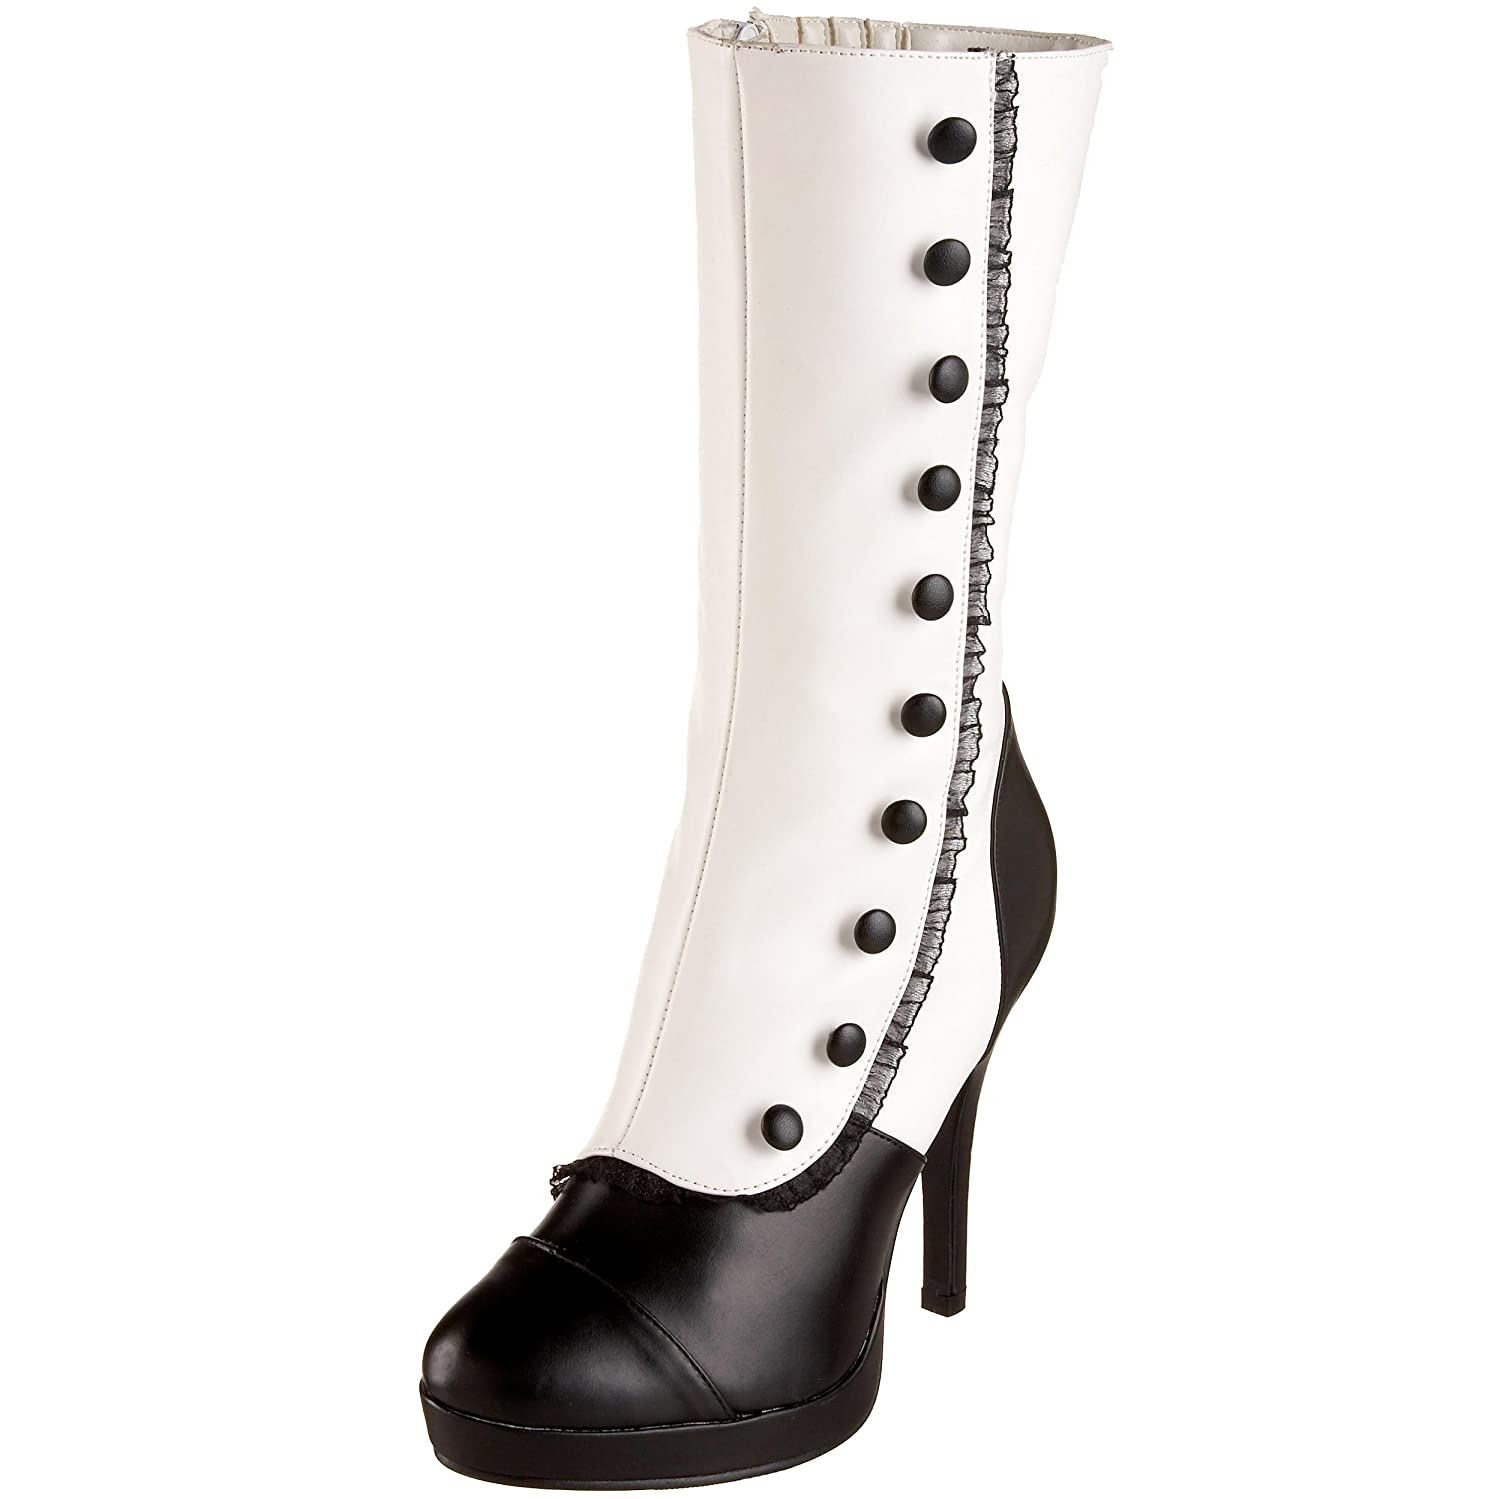 Ladies Victorian Boots & Shoes – Granny boots Womens Splendor-130 Mid-Calf Boot $126.63 AT vintagedancer.com